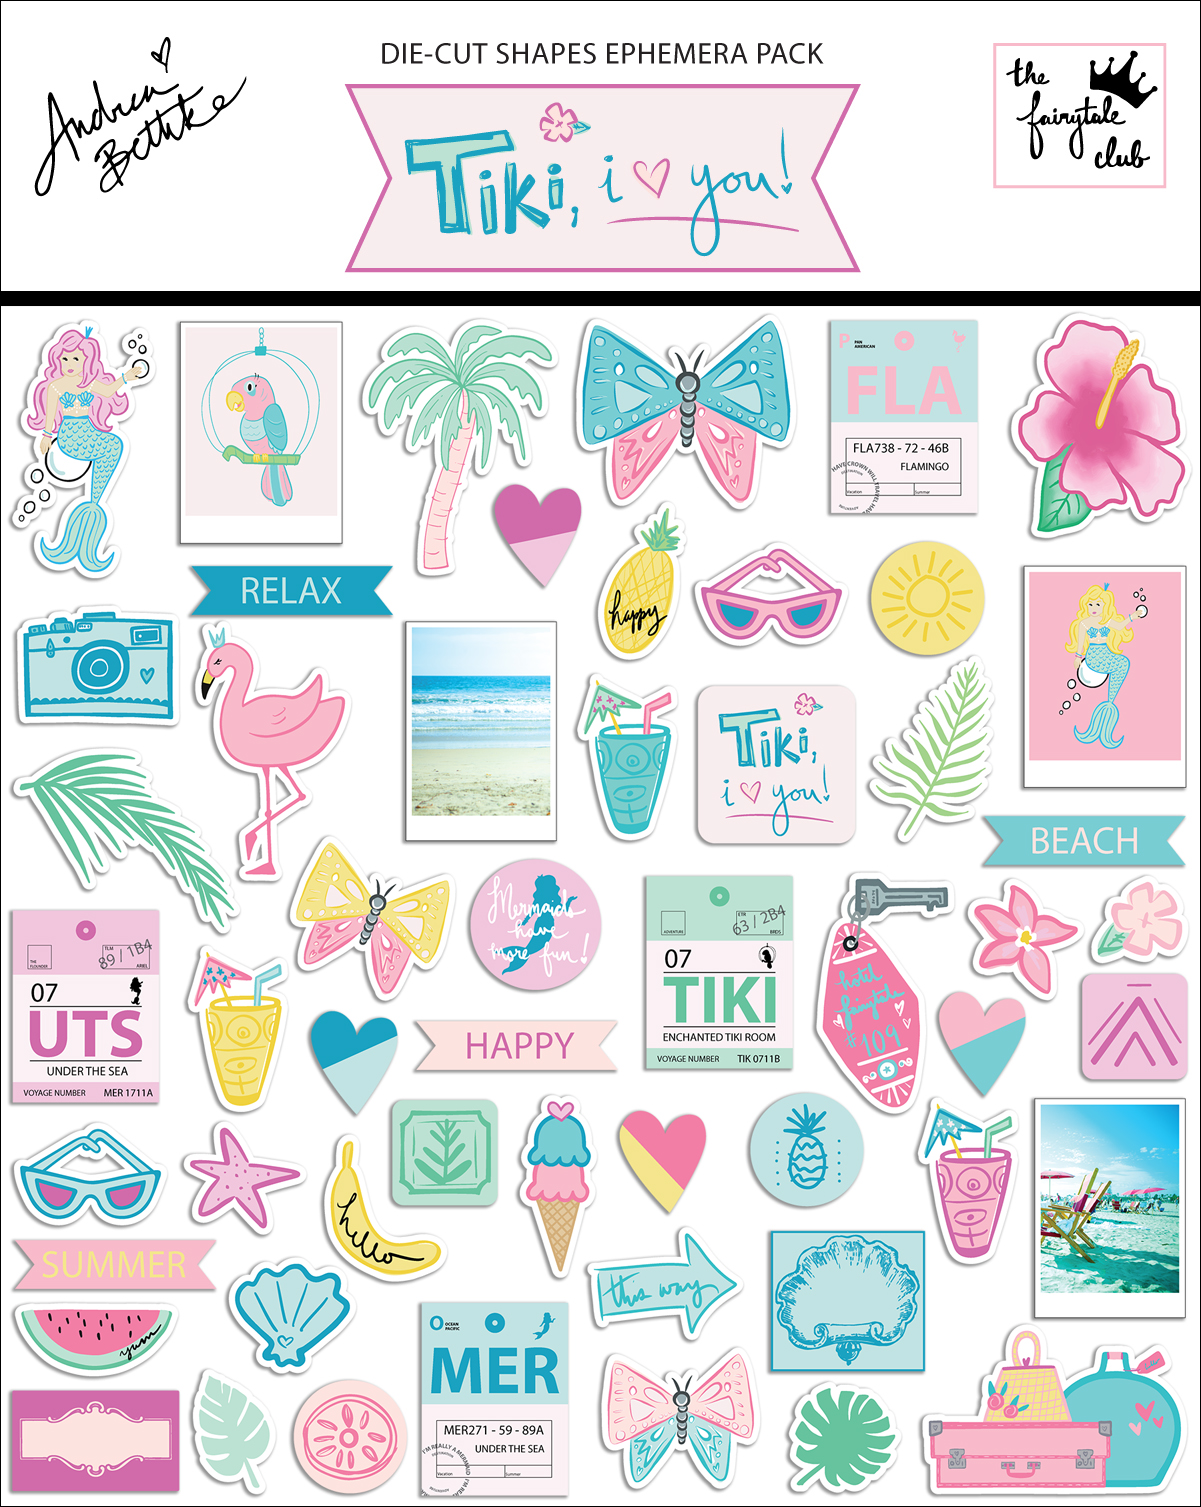 Tiki, I Love You - Shapes Ephemera Pack with packaging.jpg